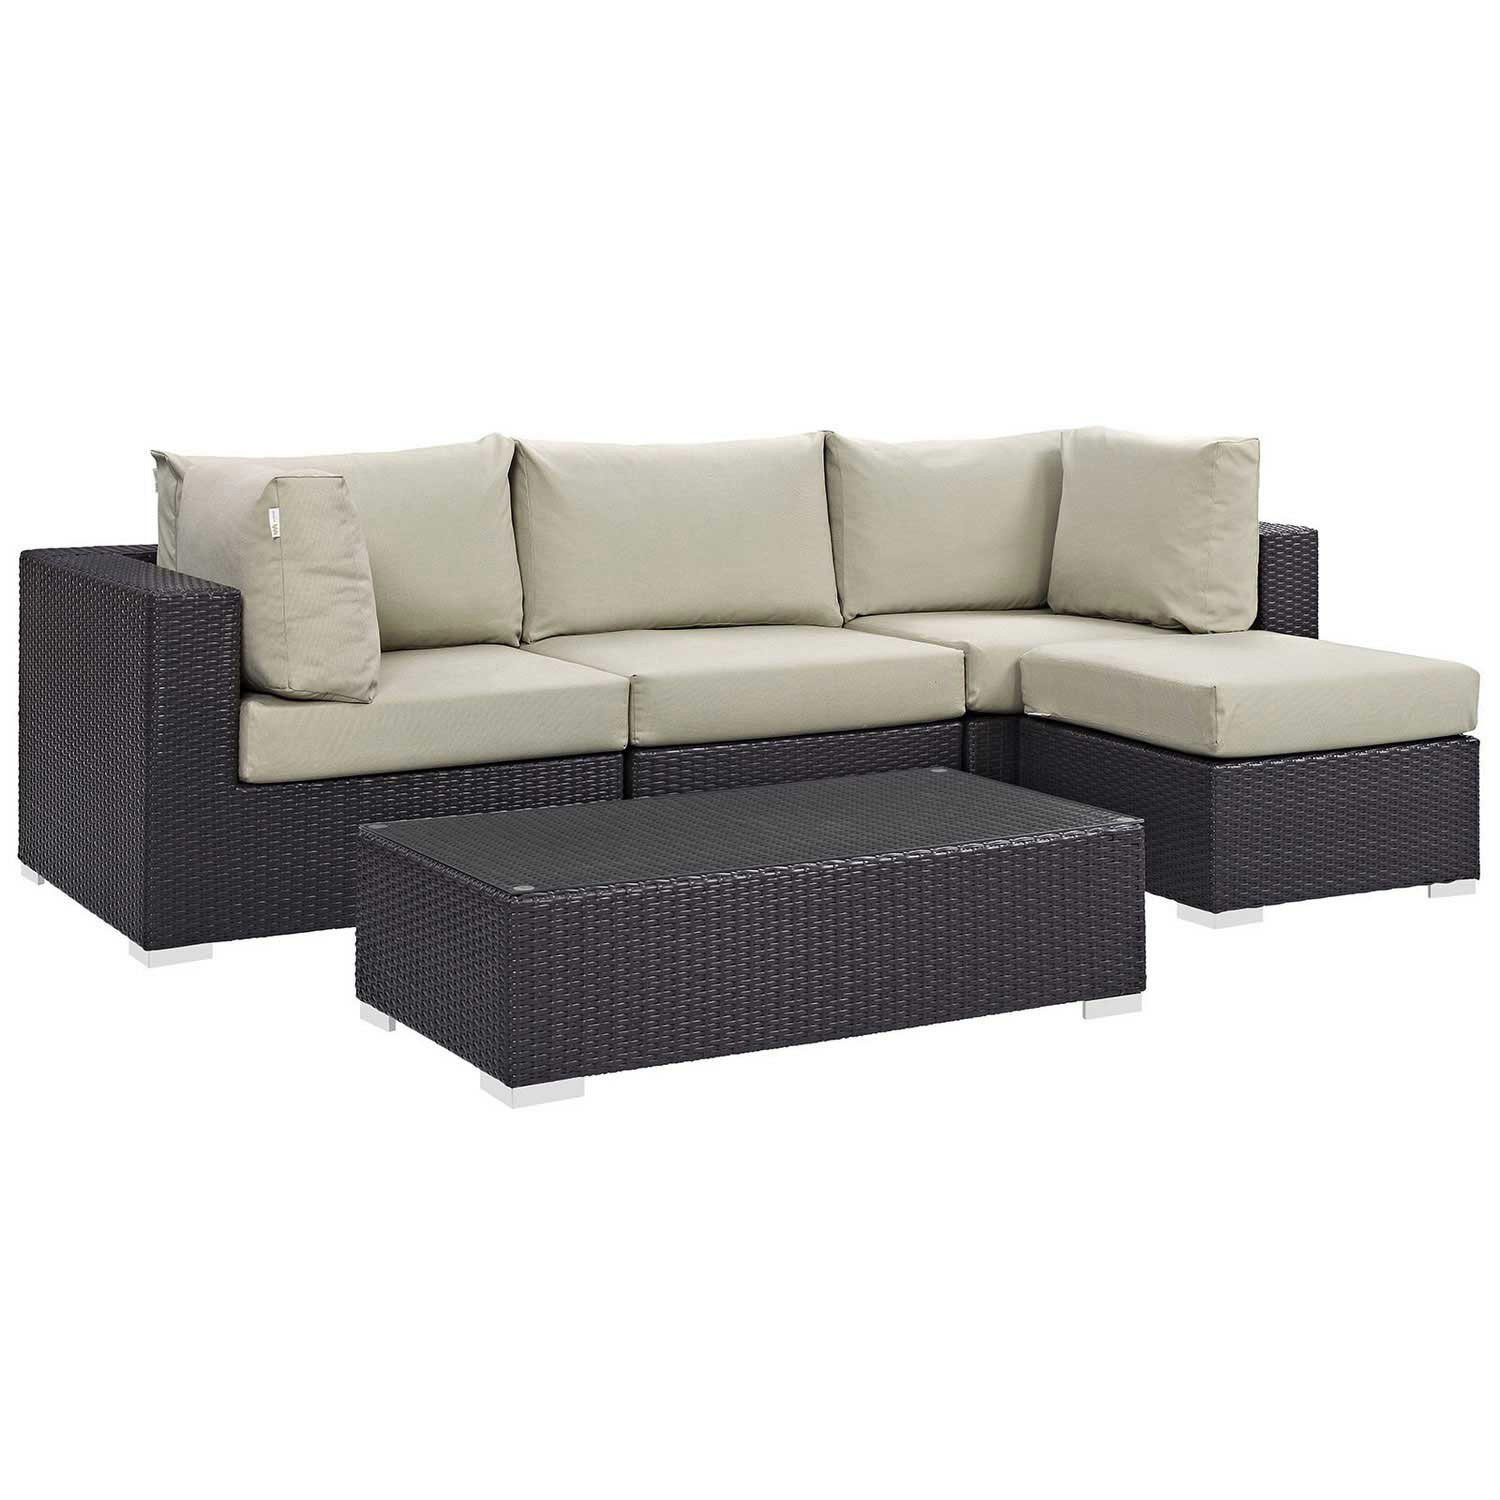 Modway Convene 5 Piece Outdoor Patio Sectional Set - Espresso Beige